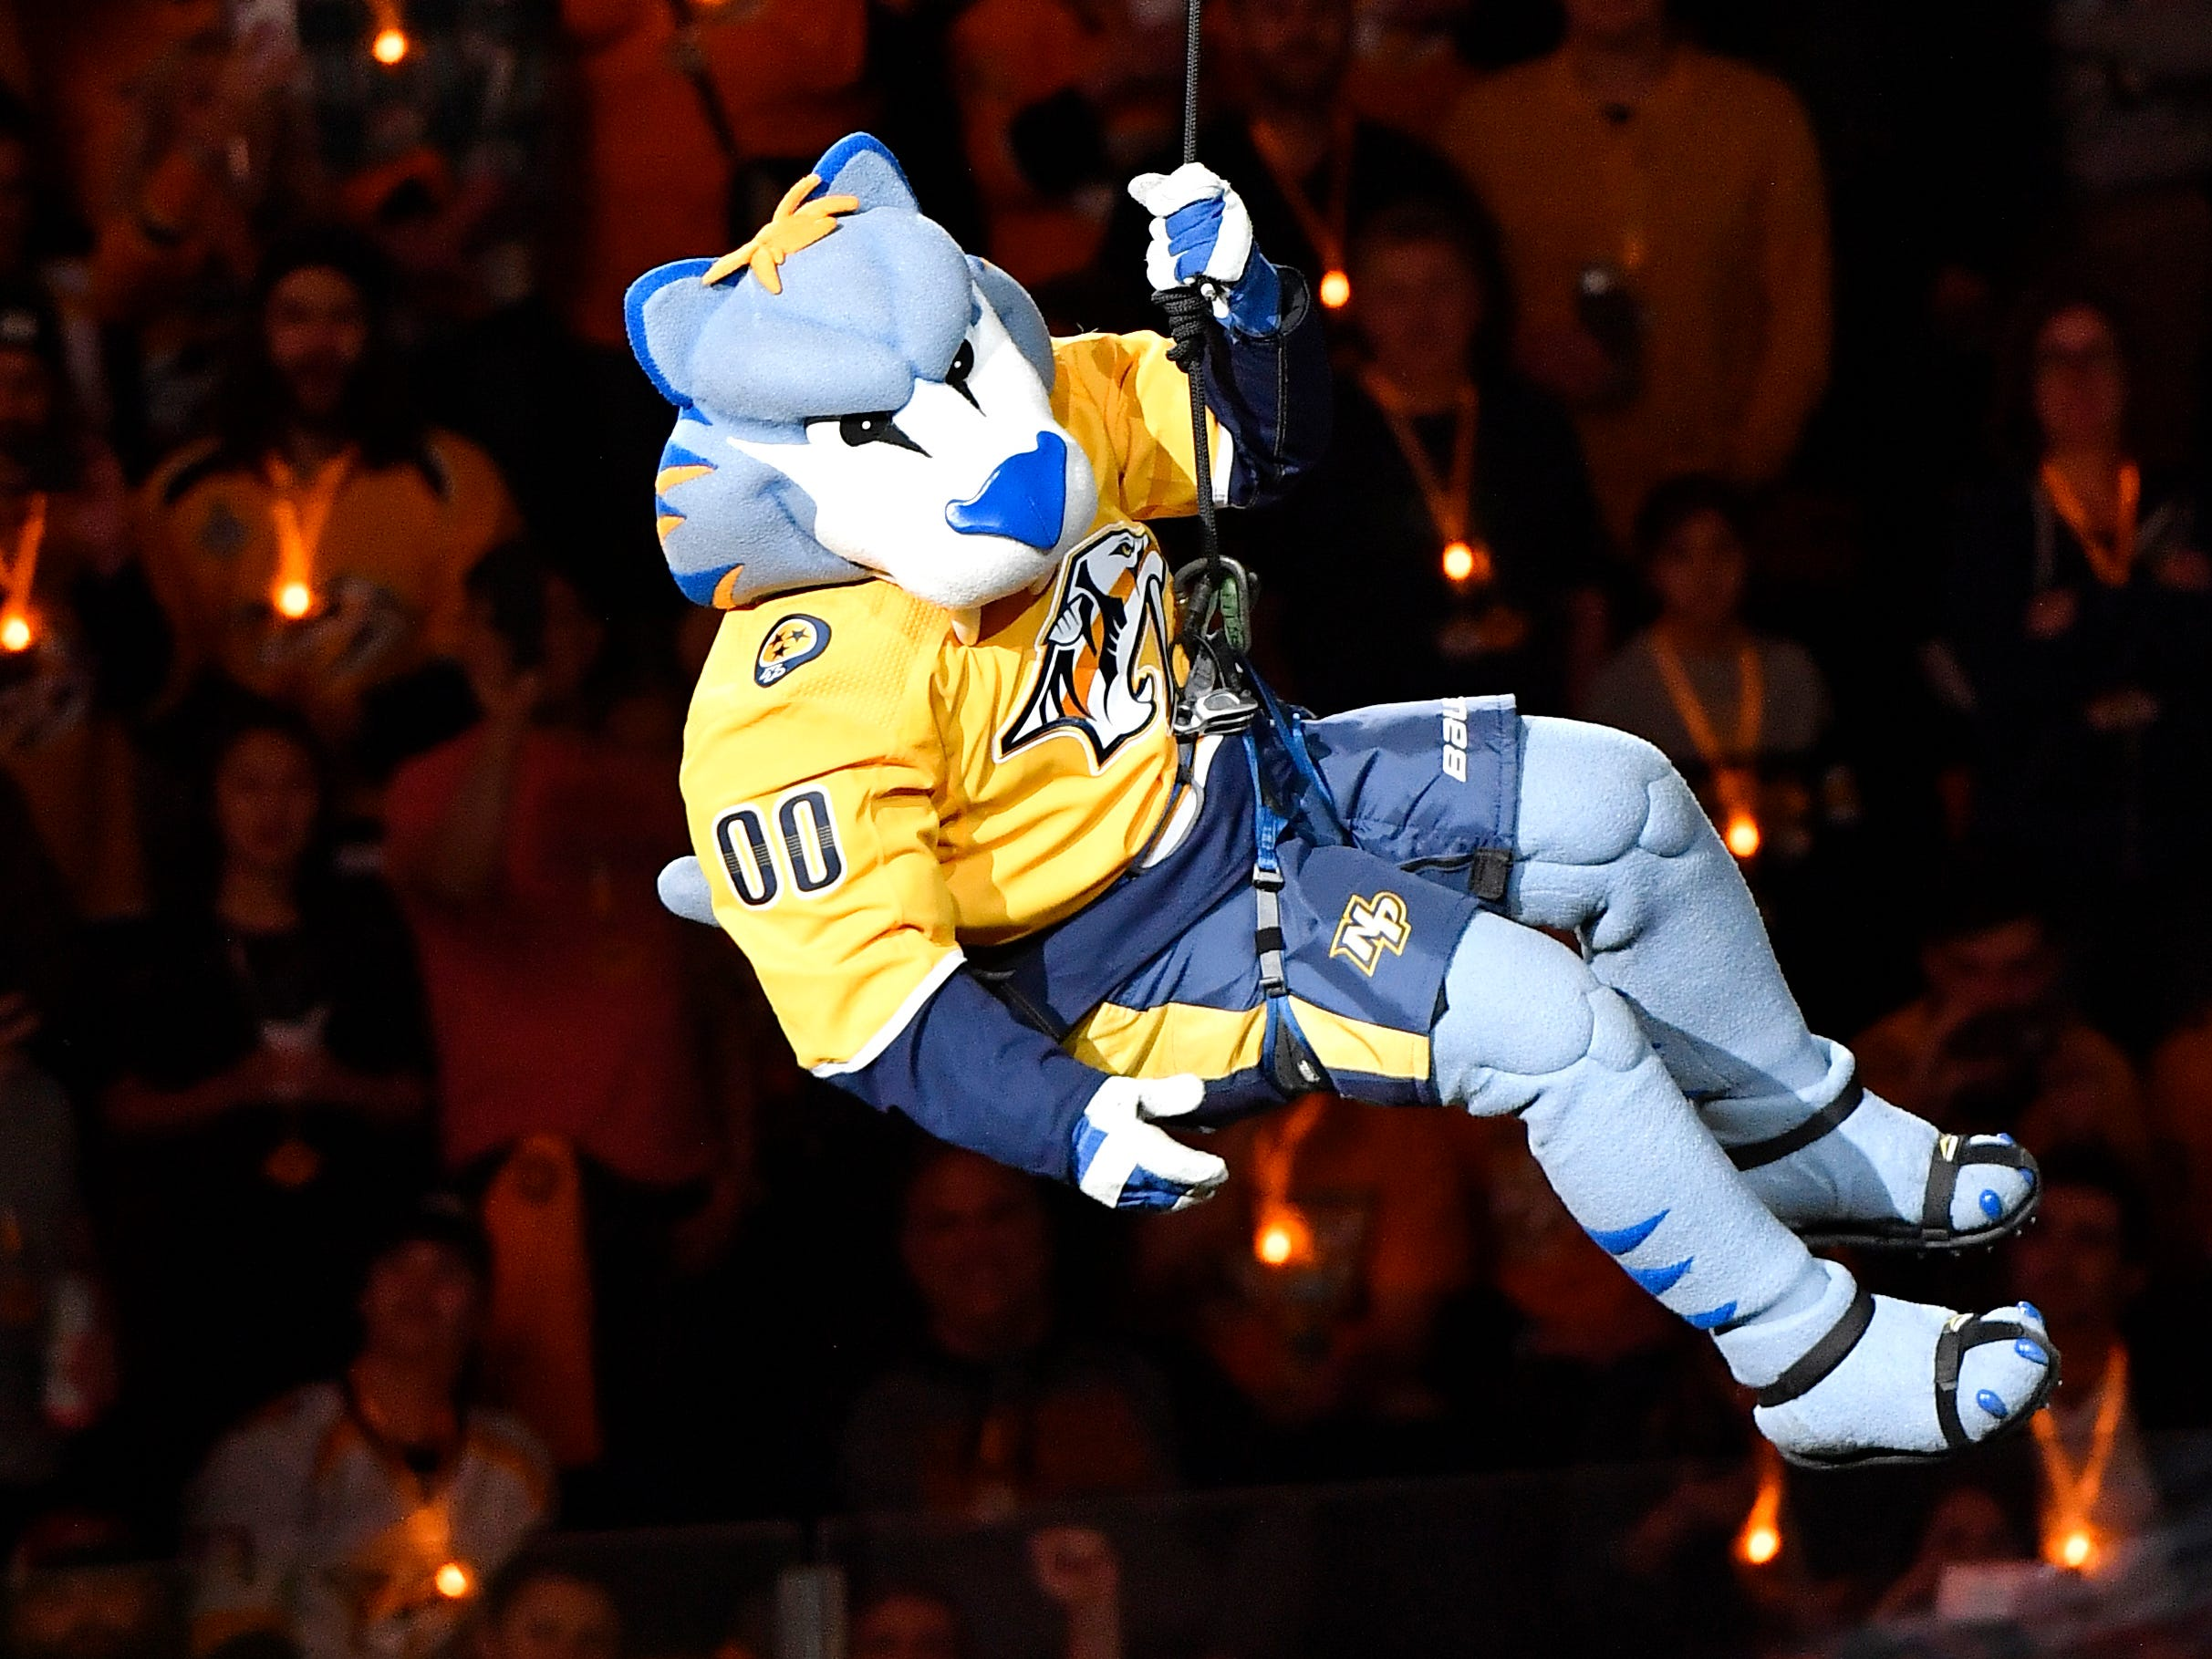 Predators mascot Gnash enters the arena during pregame festivities before the divisional semifinal game at Bridgestone Arena in Nashville, Tenn., Wednesday, April 10, 2019.